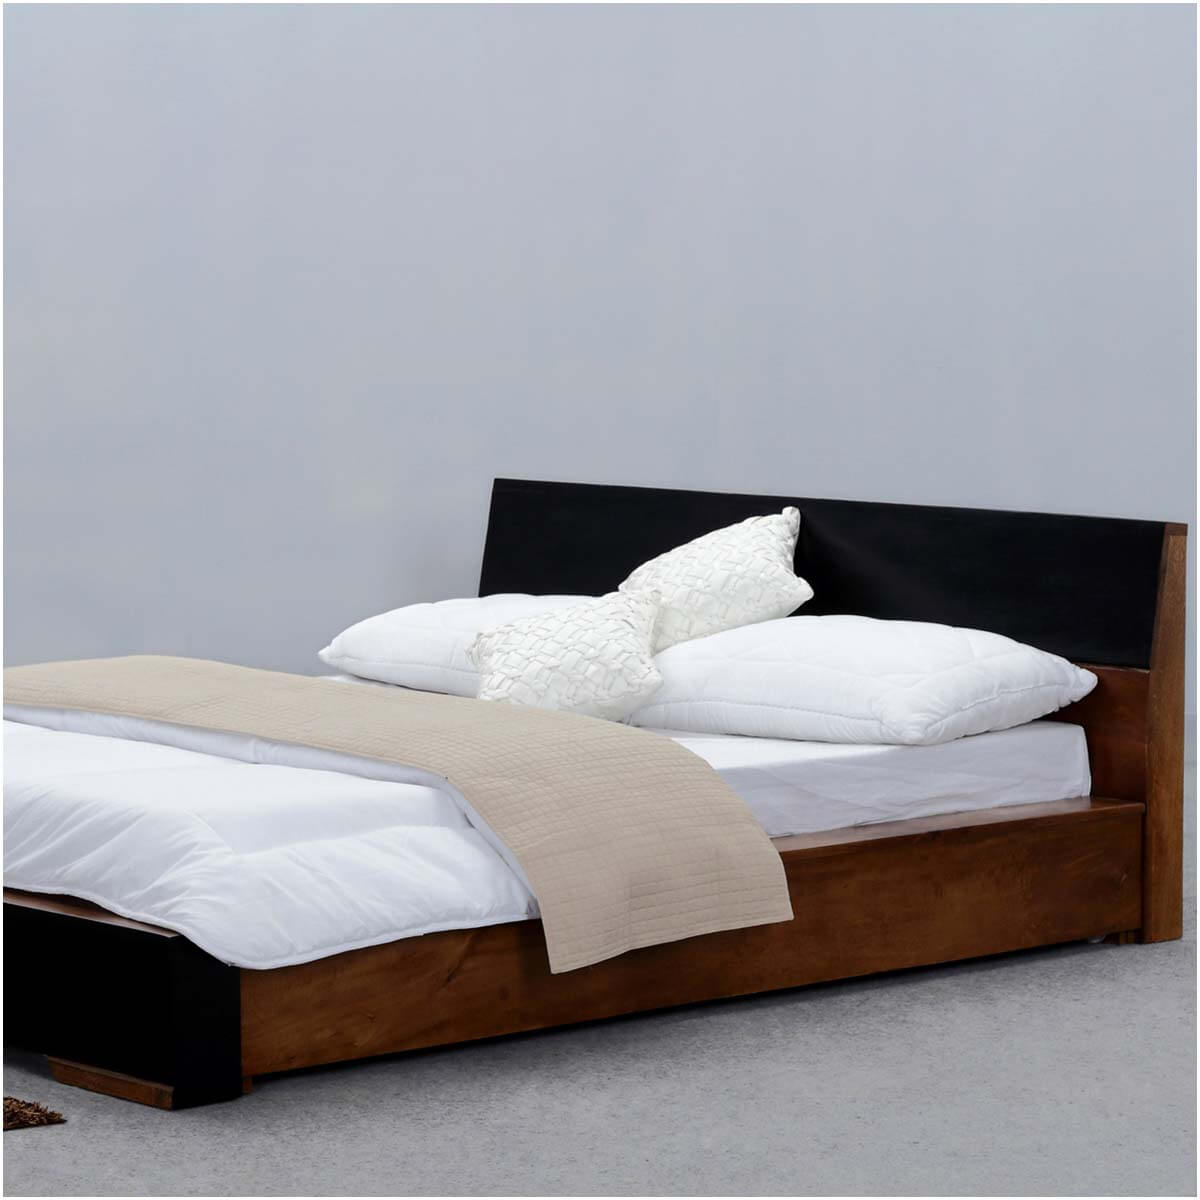 On Floor Beds Modern Simplicity California King Size Floor Frame